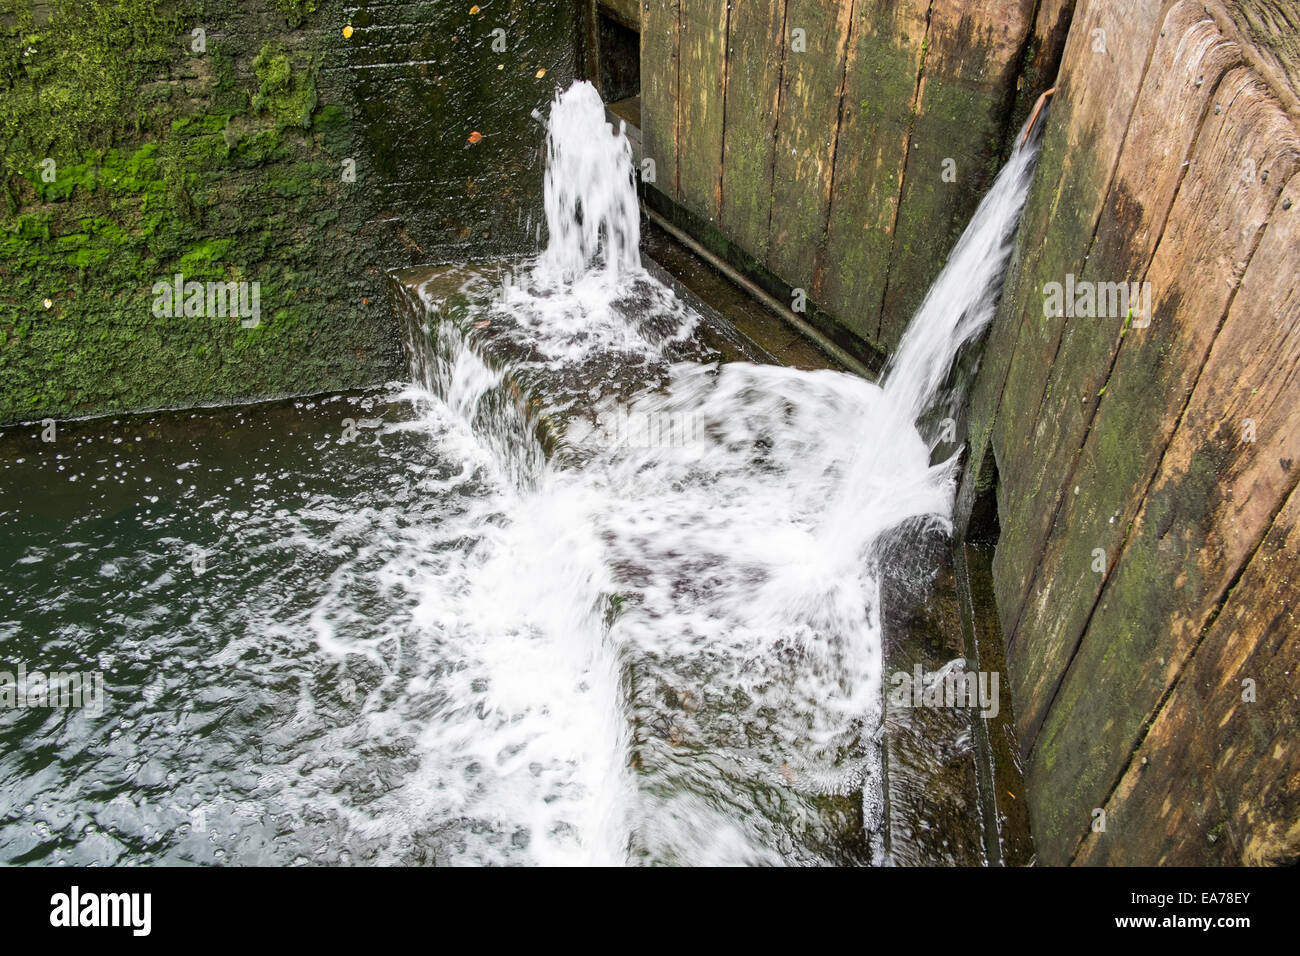 London lack canal water Hackney - Stock Image